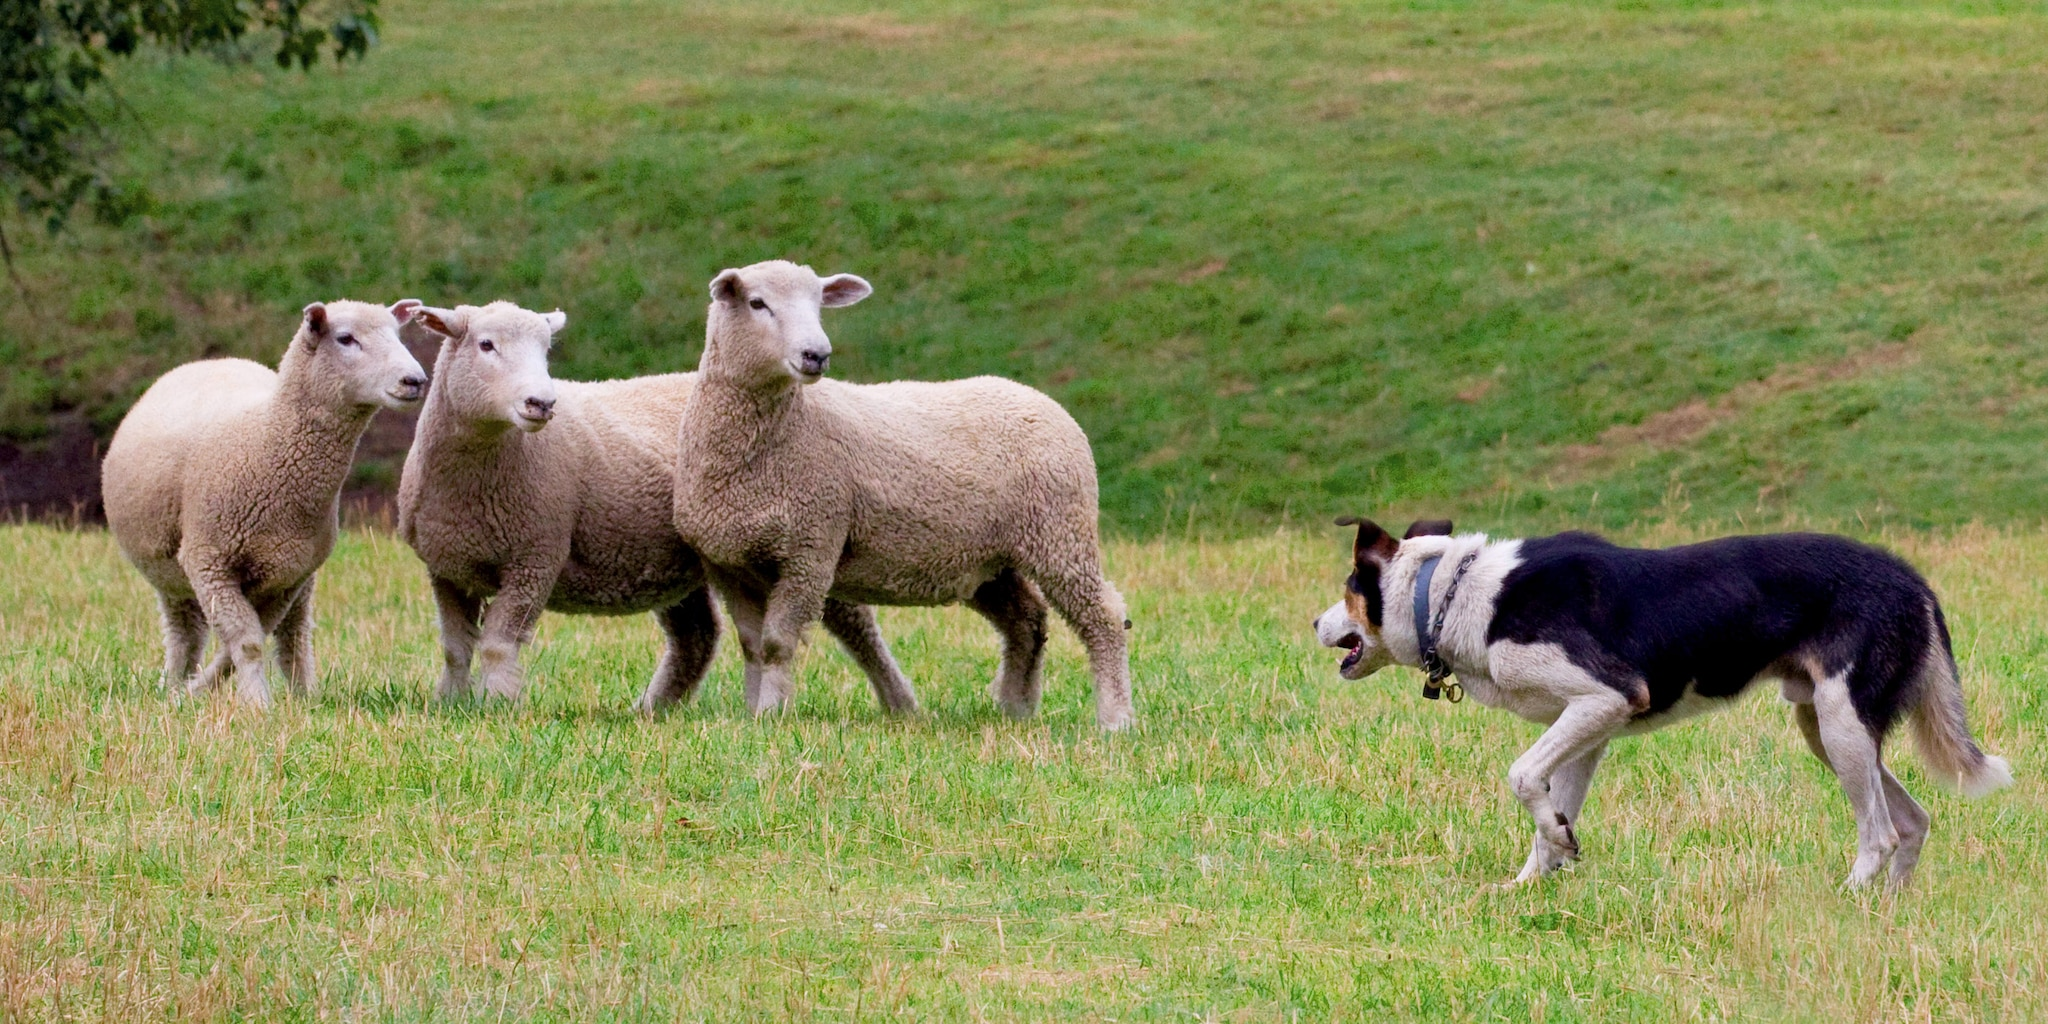 A sheepdog herds 3 sheep